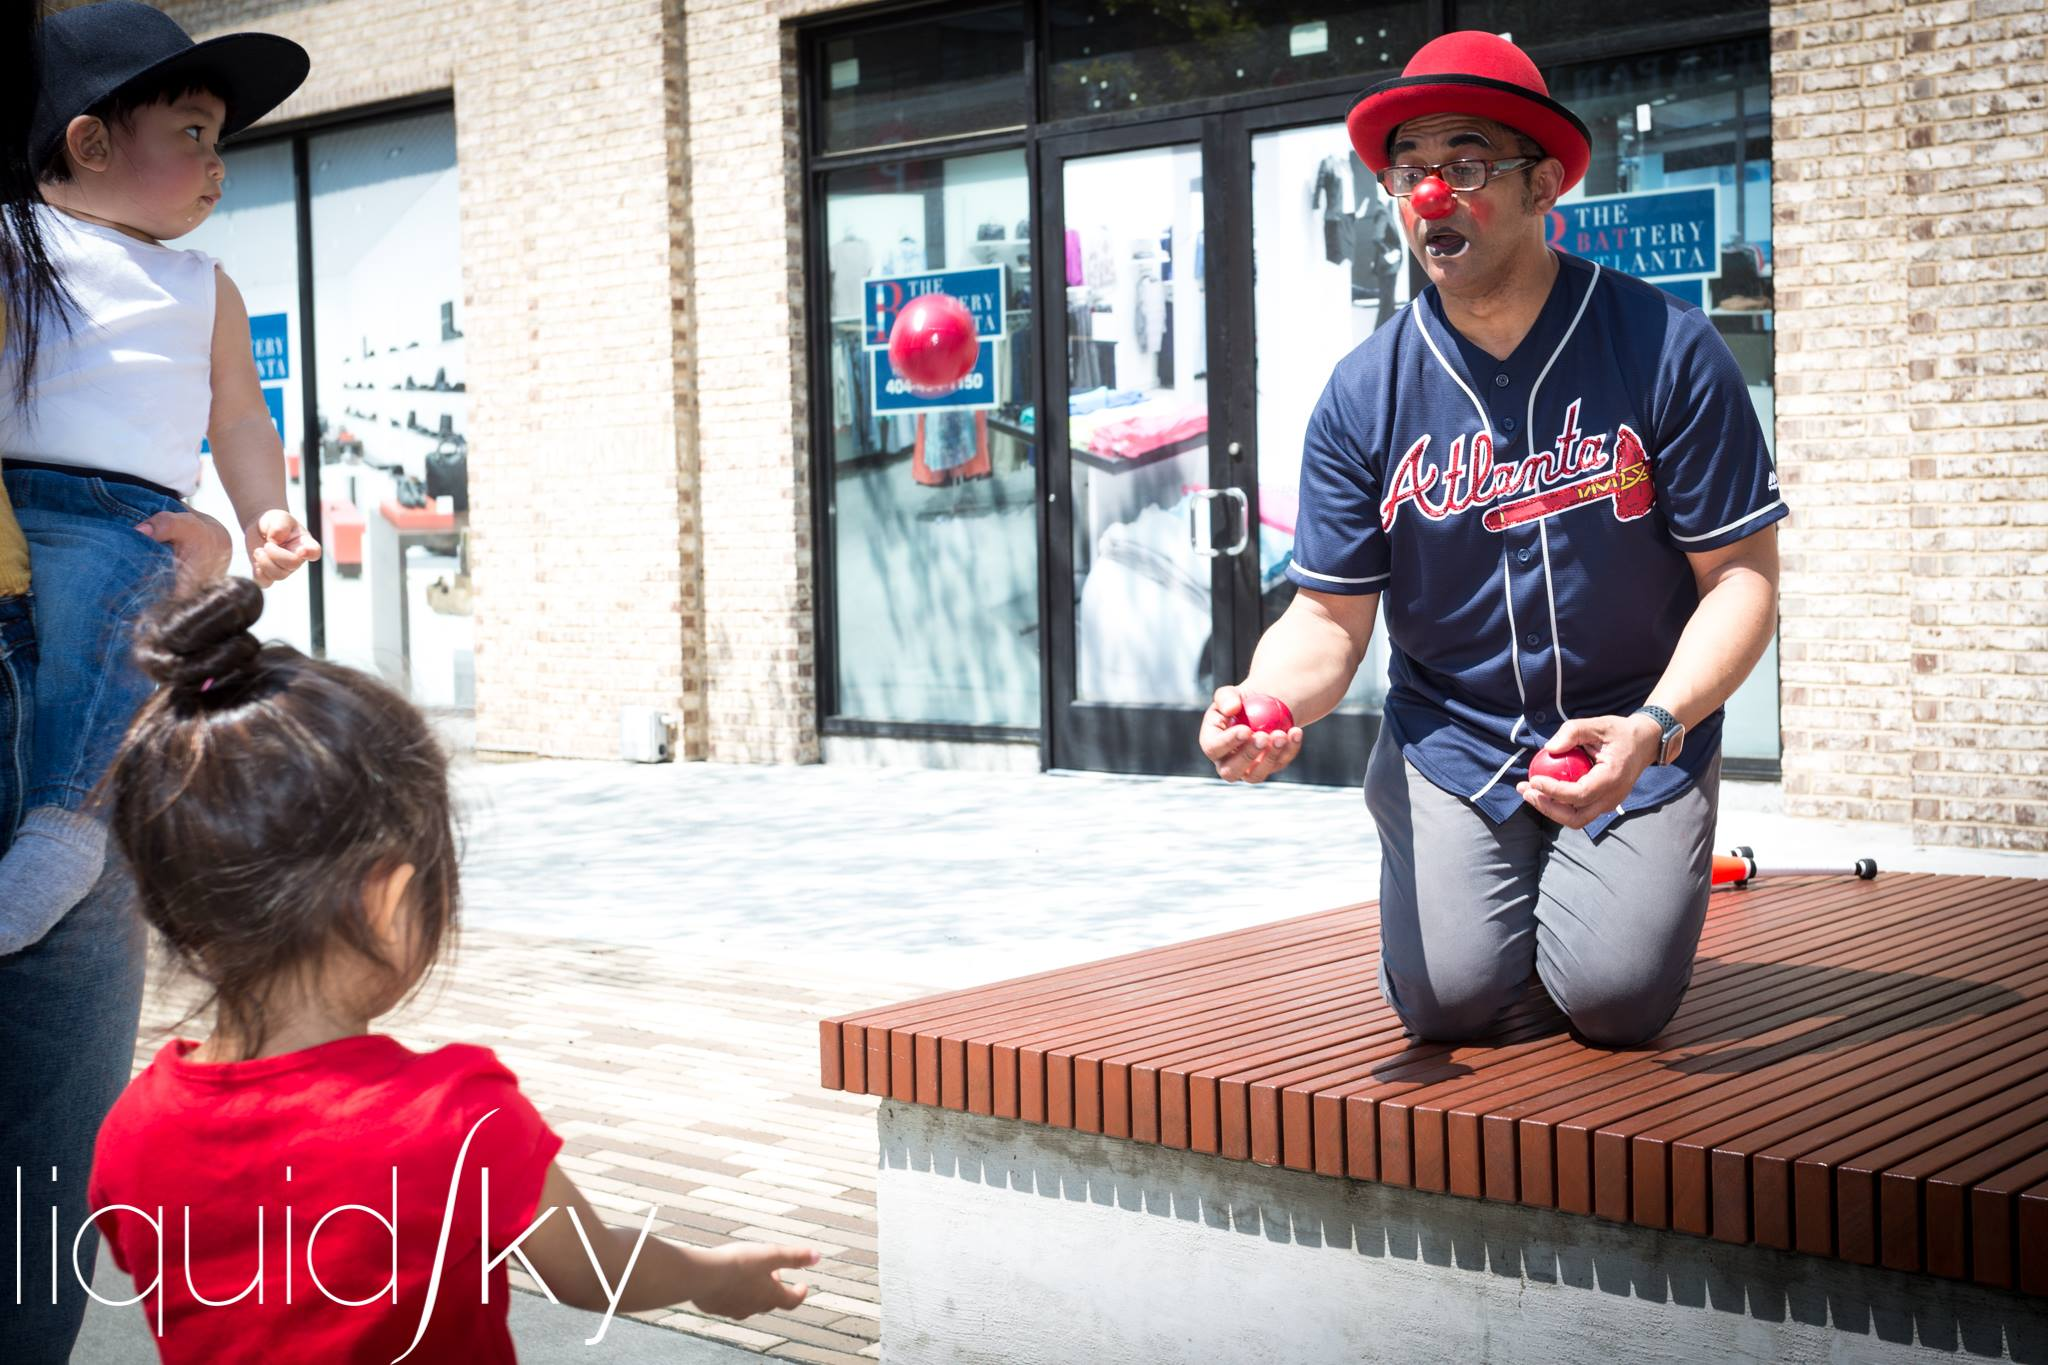 Liquid Sky at Braves toss with child.jpg